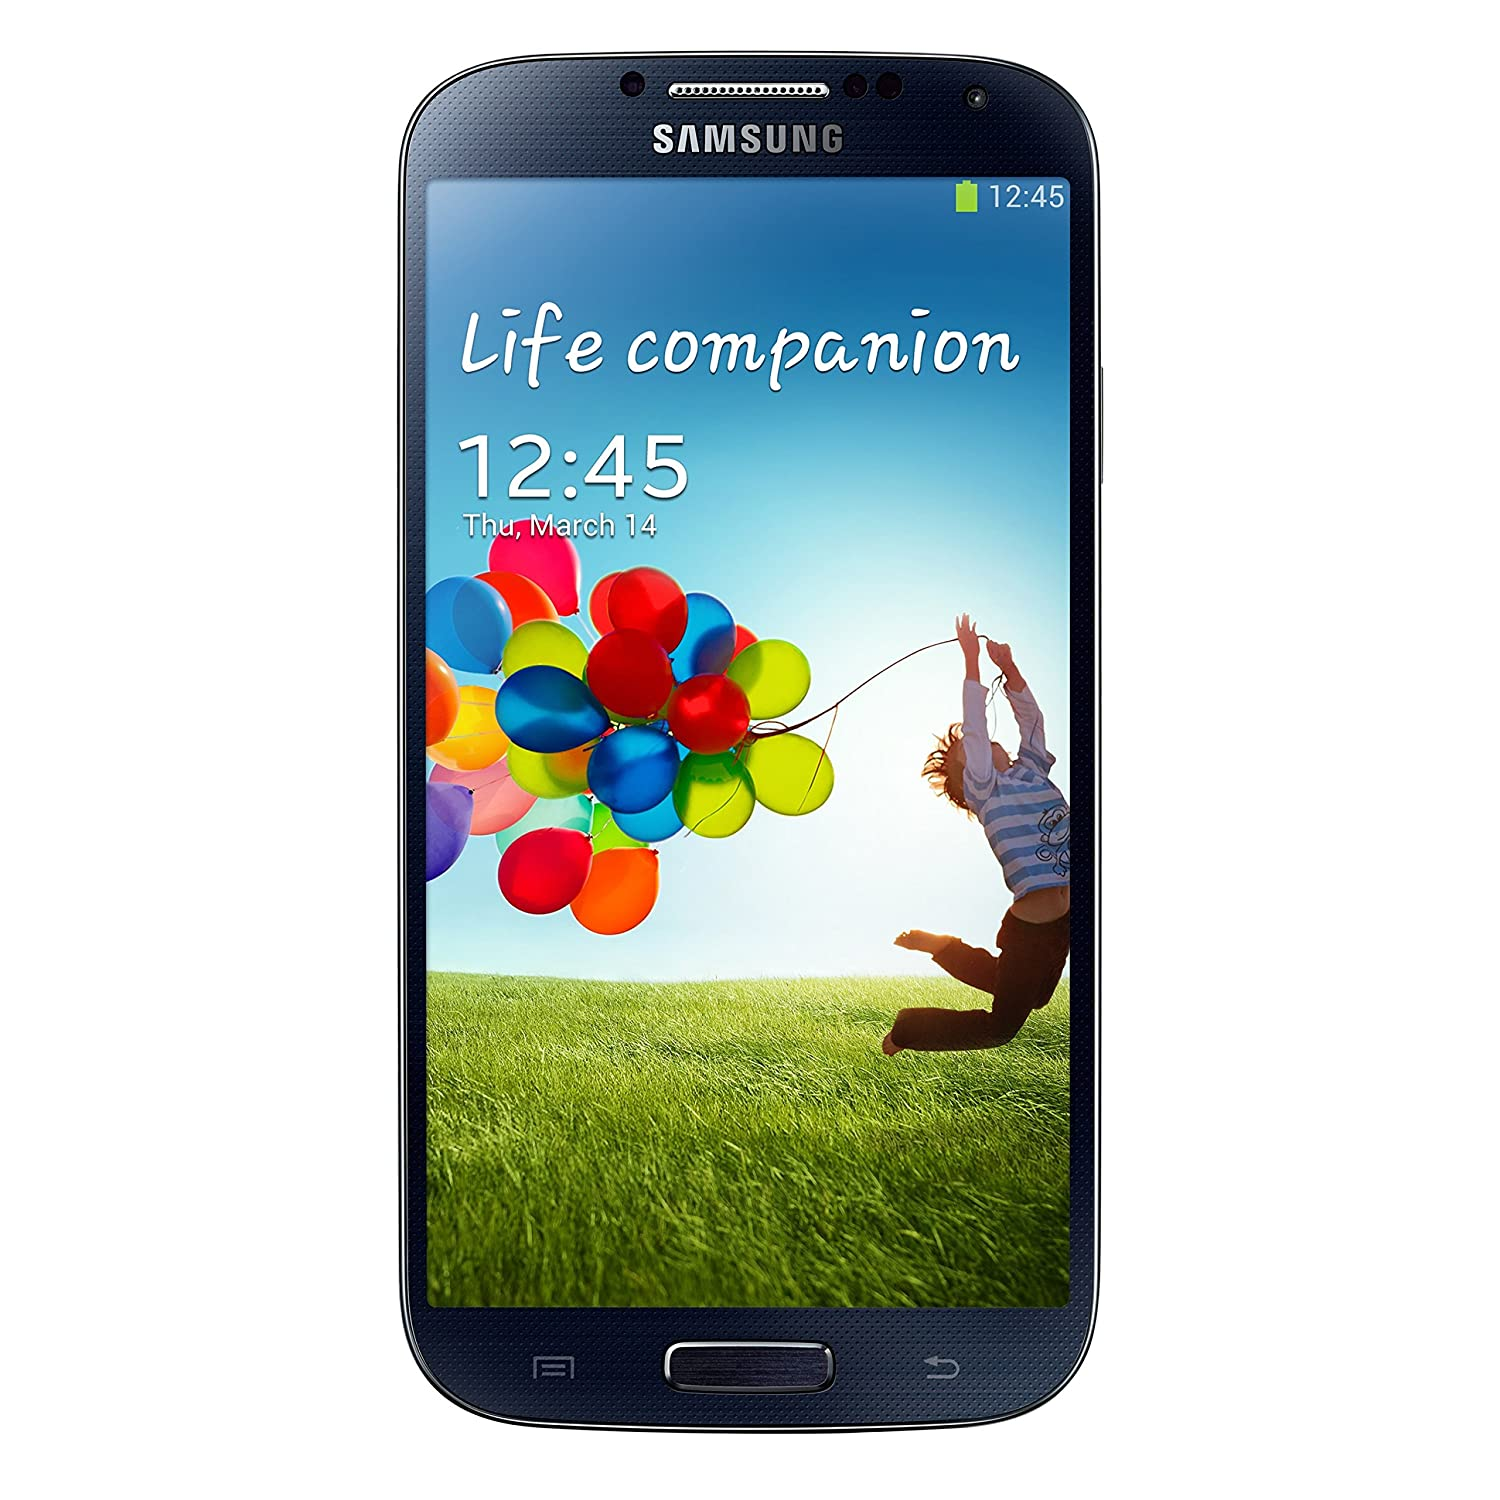 c8746ad7c7cbc8 Amazon.com: Samsung Galaxy S4 i9500 Factory Unlocked Cellphone,  International Version, 16GB, Black : Cell Phones & Accessories